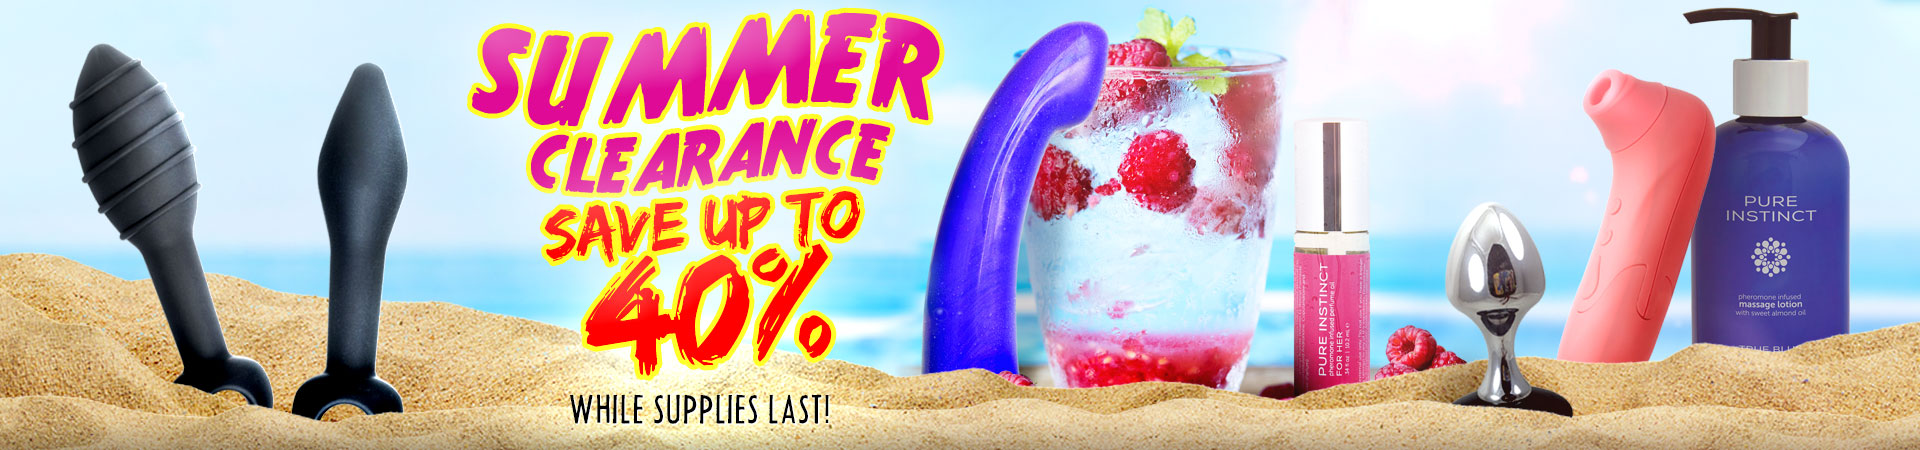 SAVE Up To 40%! Check Out SheVibe's Summer Clearance SALE! While Supplies Last!